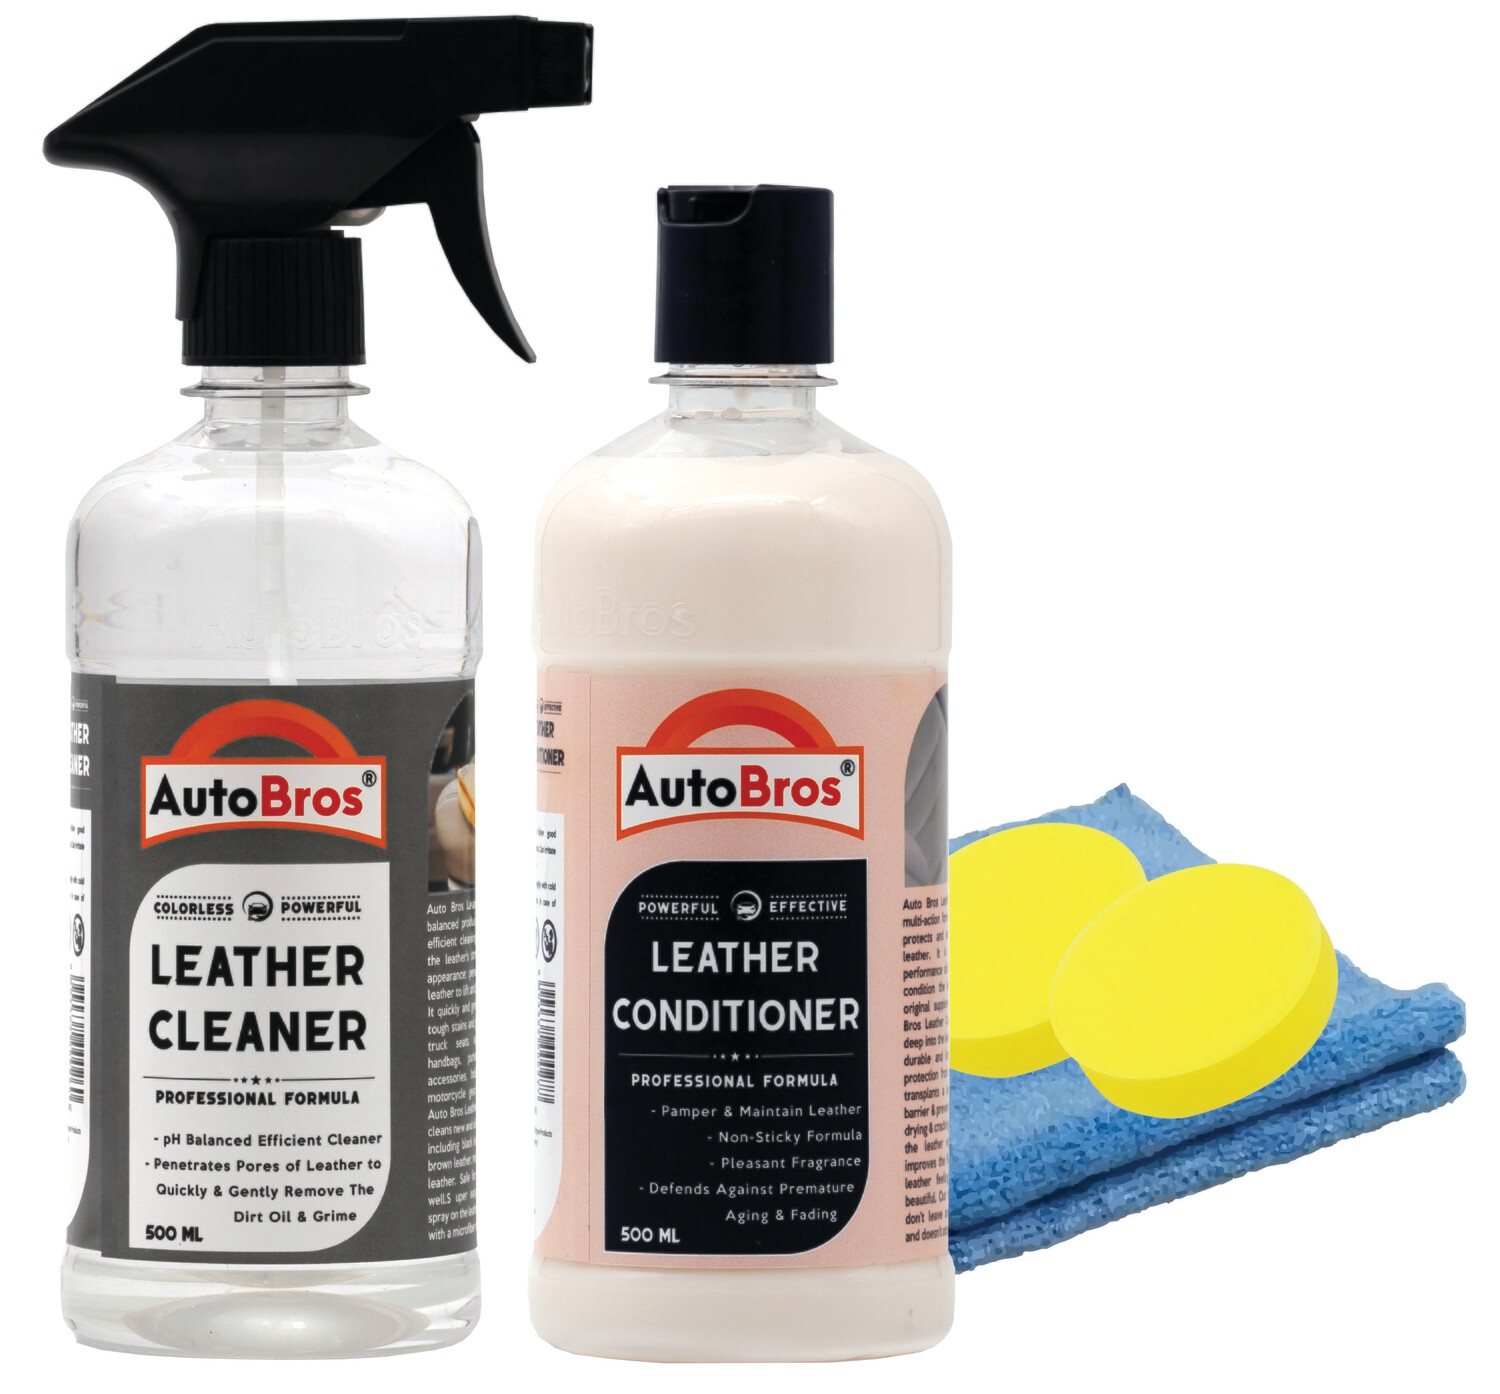 Leather Care Combo Kit - Leather Cleaner with Leather Conditioner + 1Pc Microfiber Cloth + 2 Foam Pad Applicators